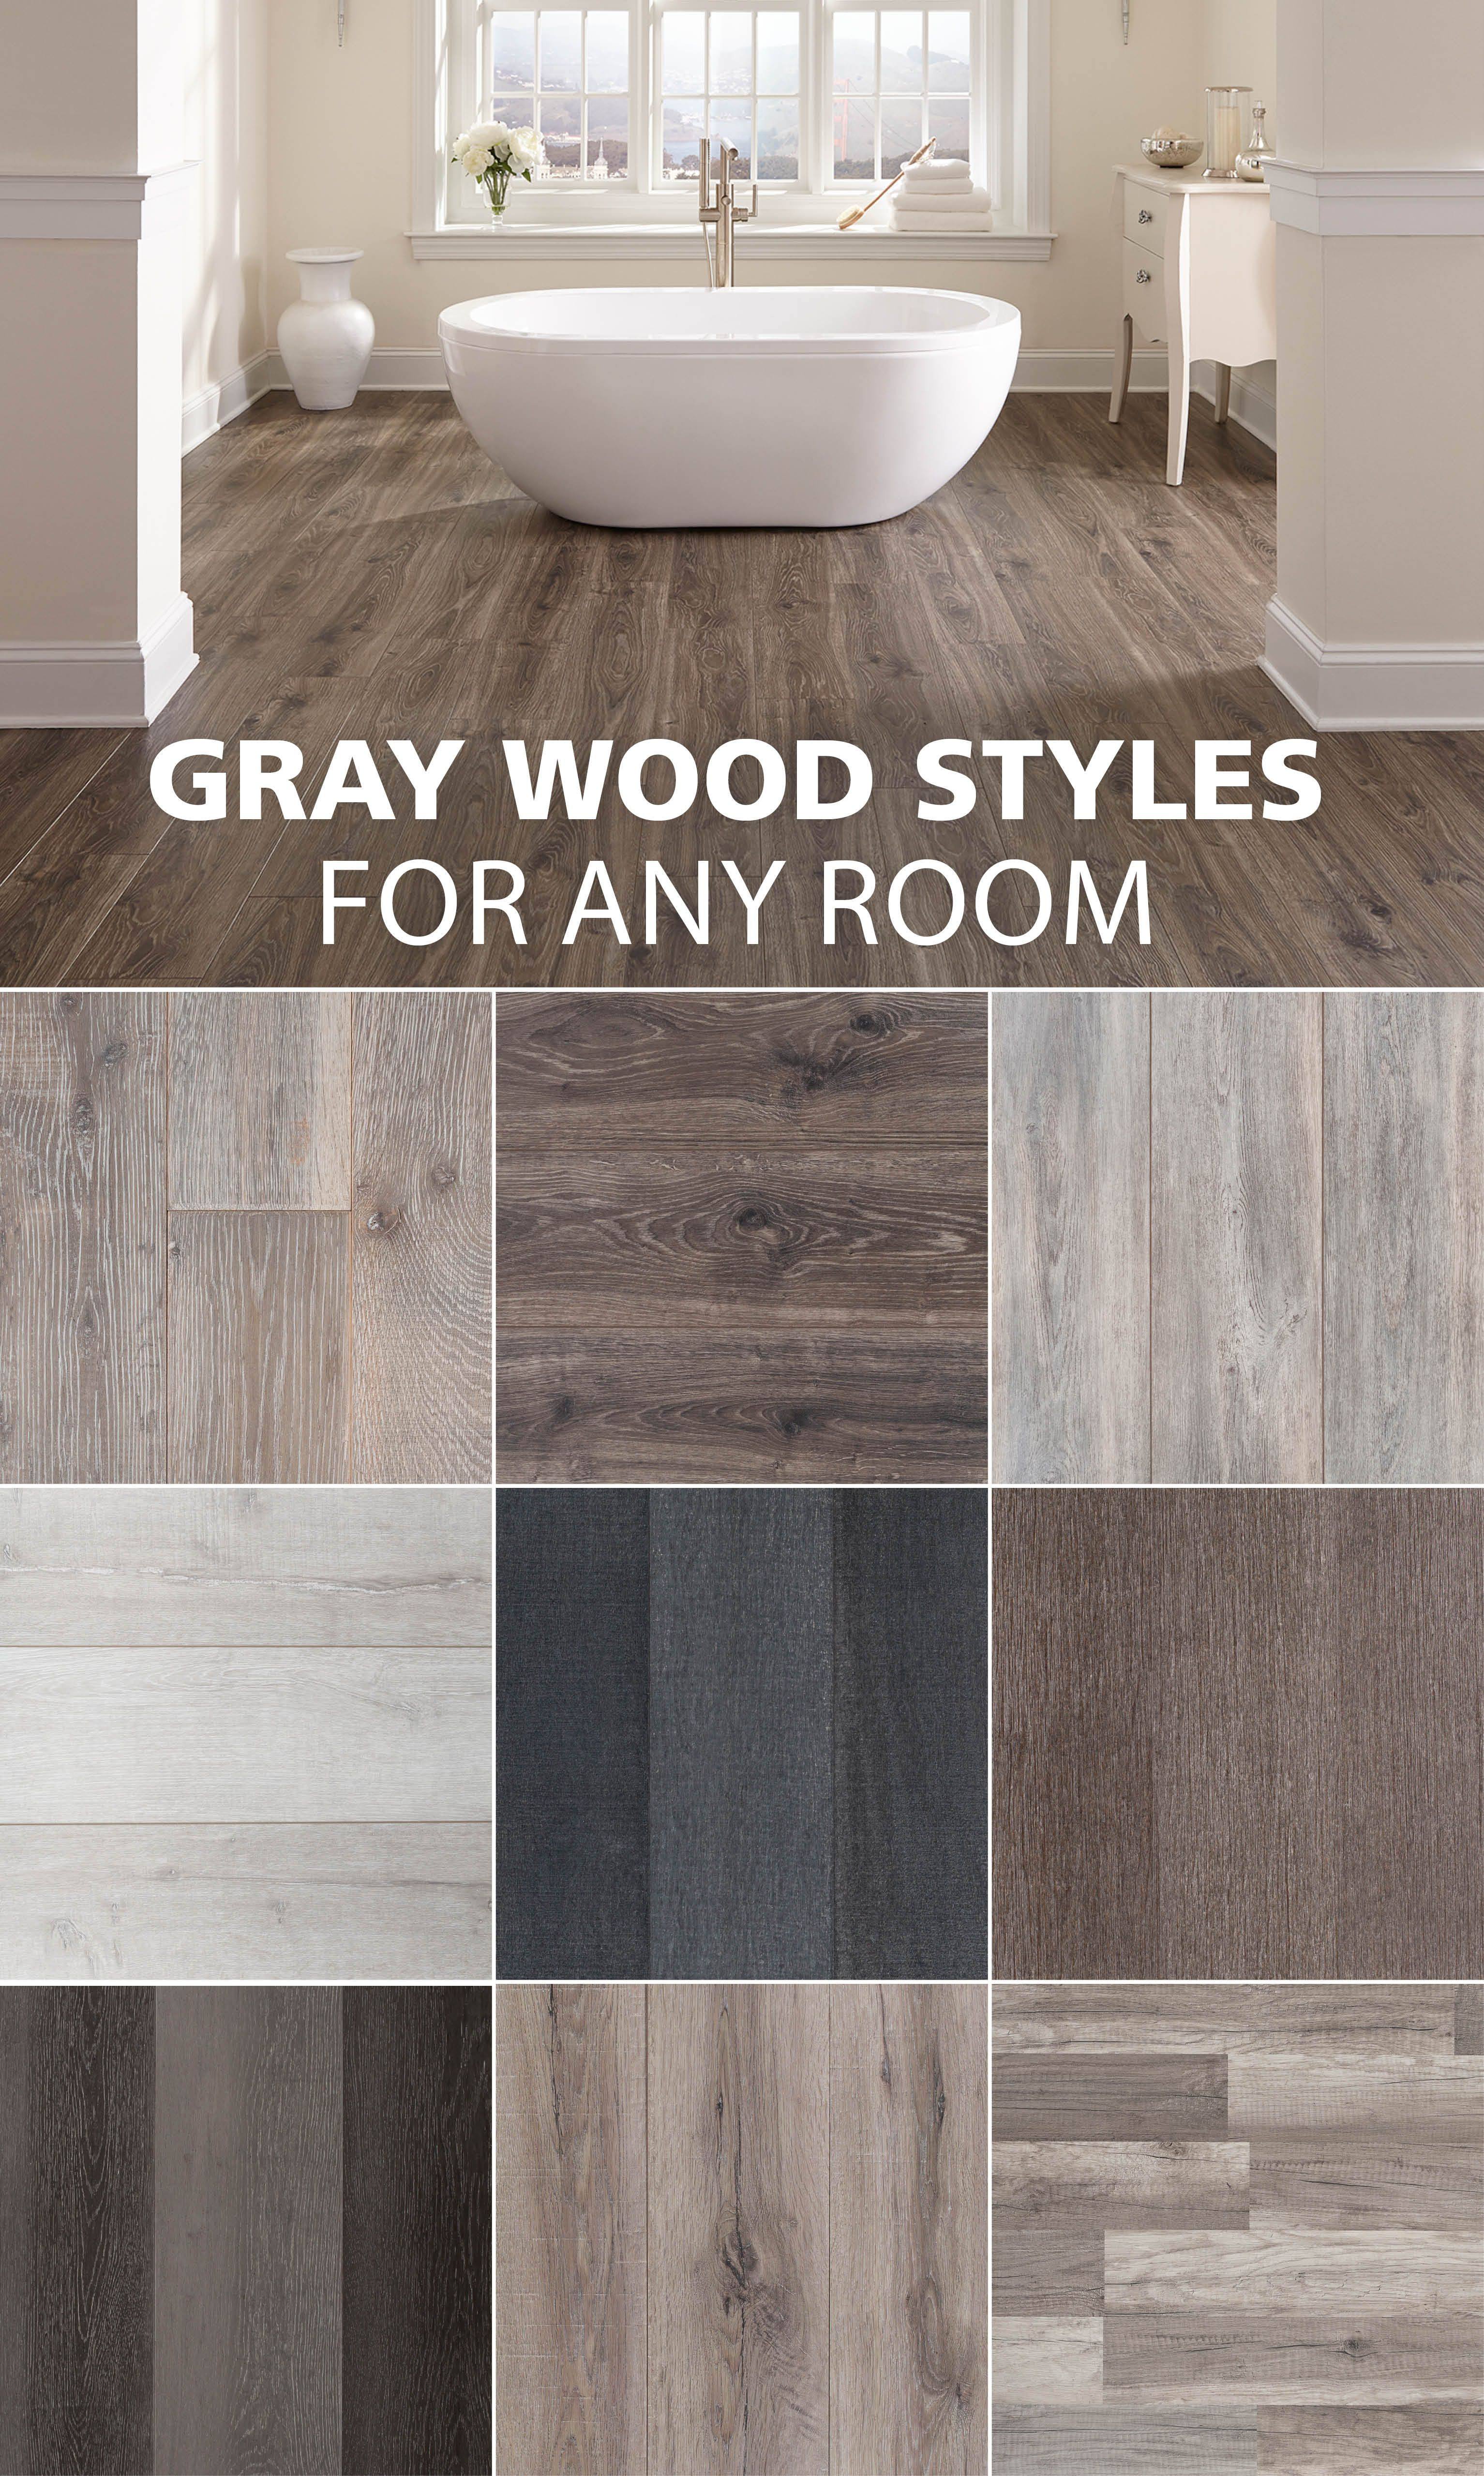 30 Stylish White Oak Grey Hardwood Flooring 2021 free download white oak grey hardwood flooring of here are some of our favorite gray wood look styles home decor pertaining to here are some of our favorite gray wood look styles